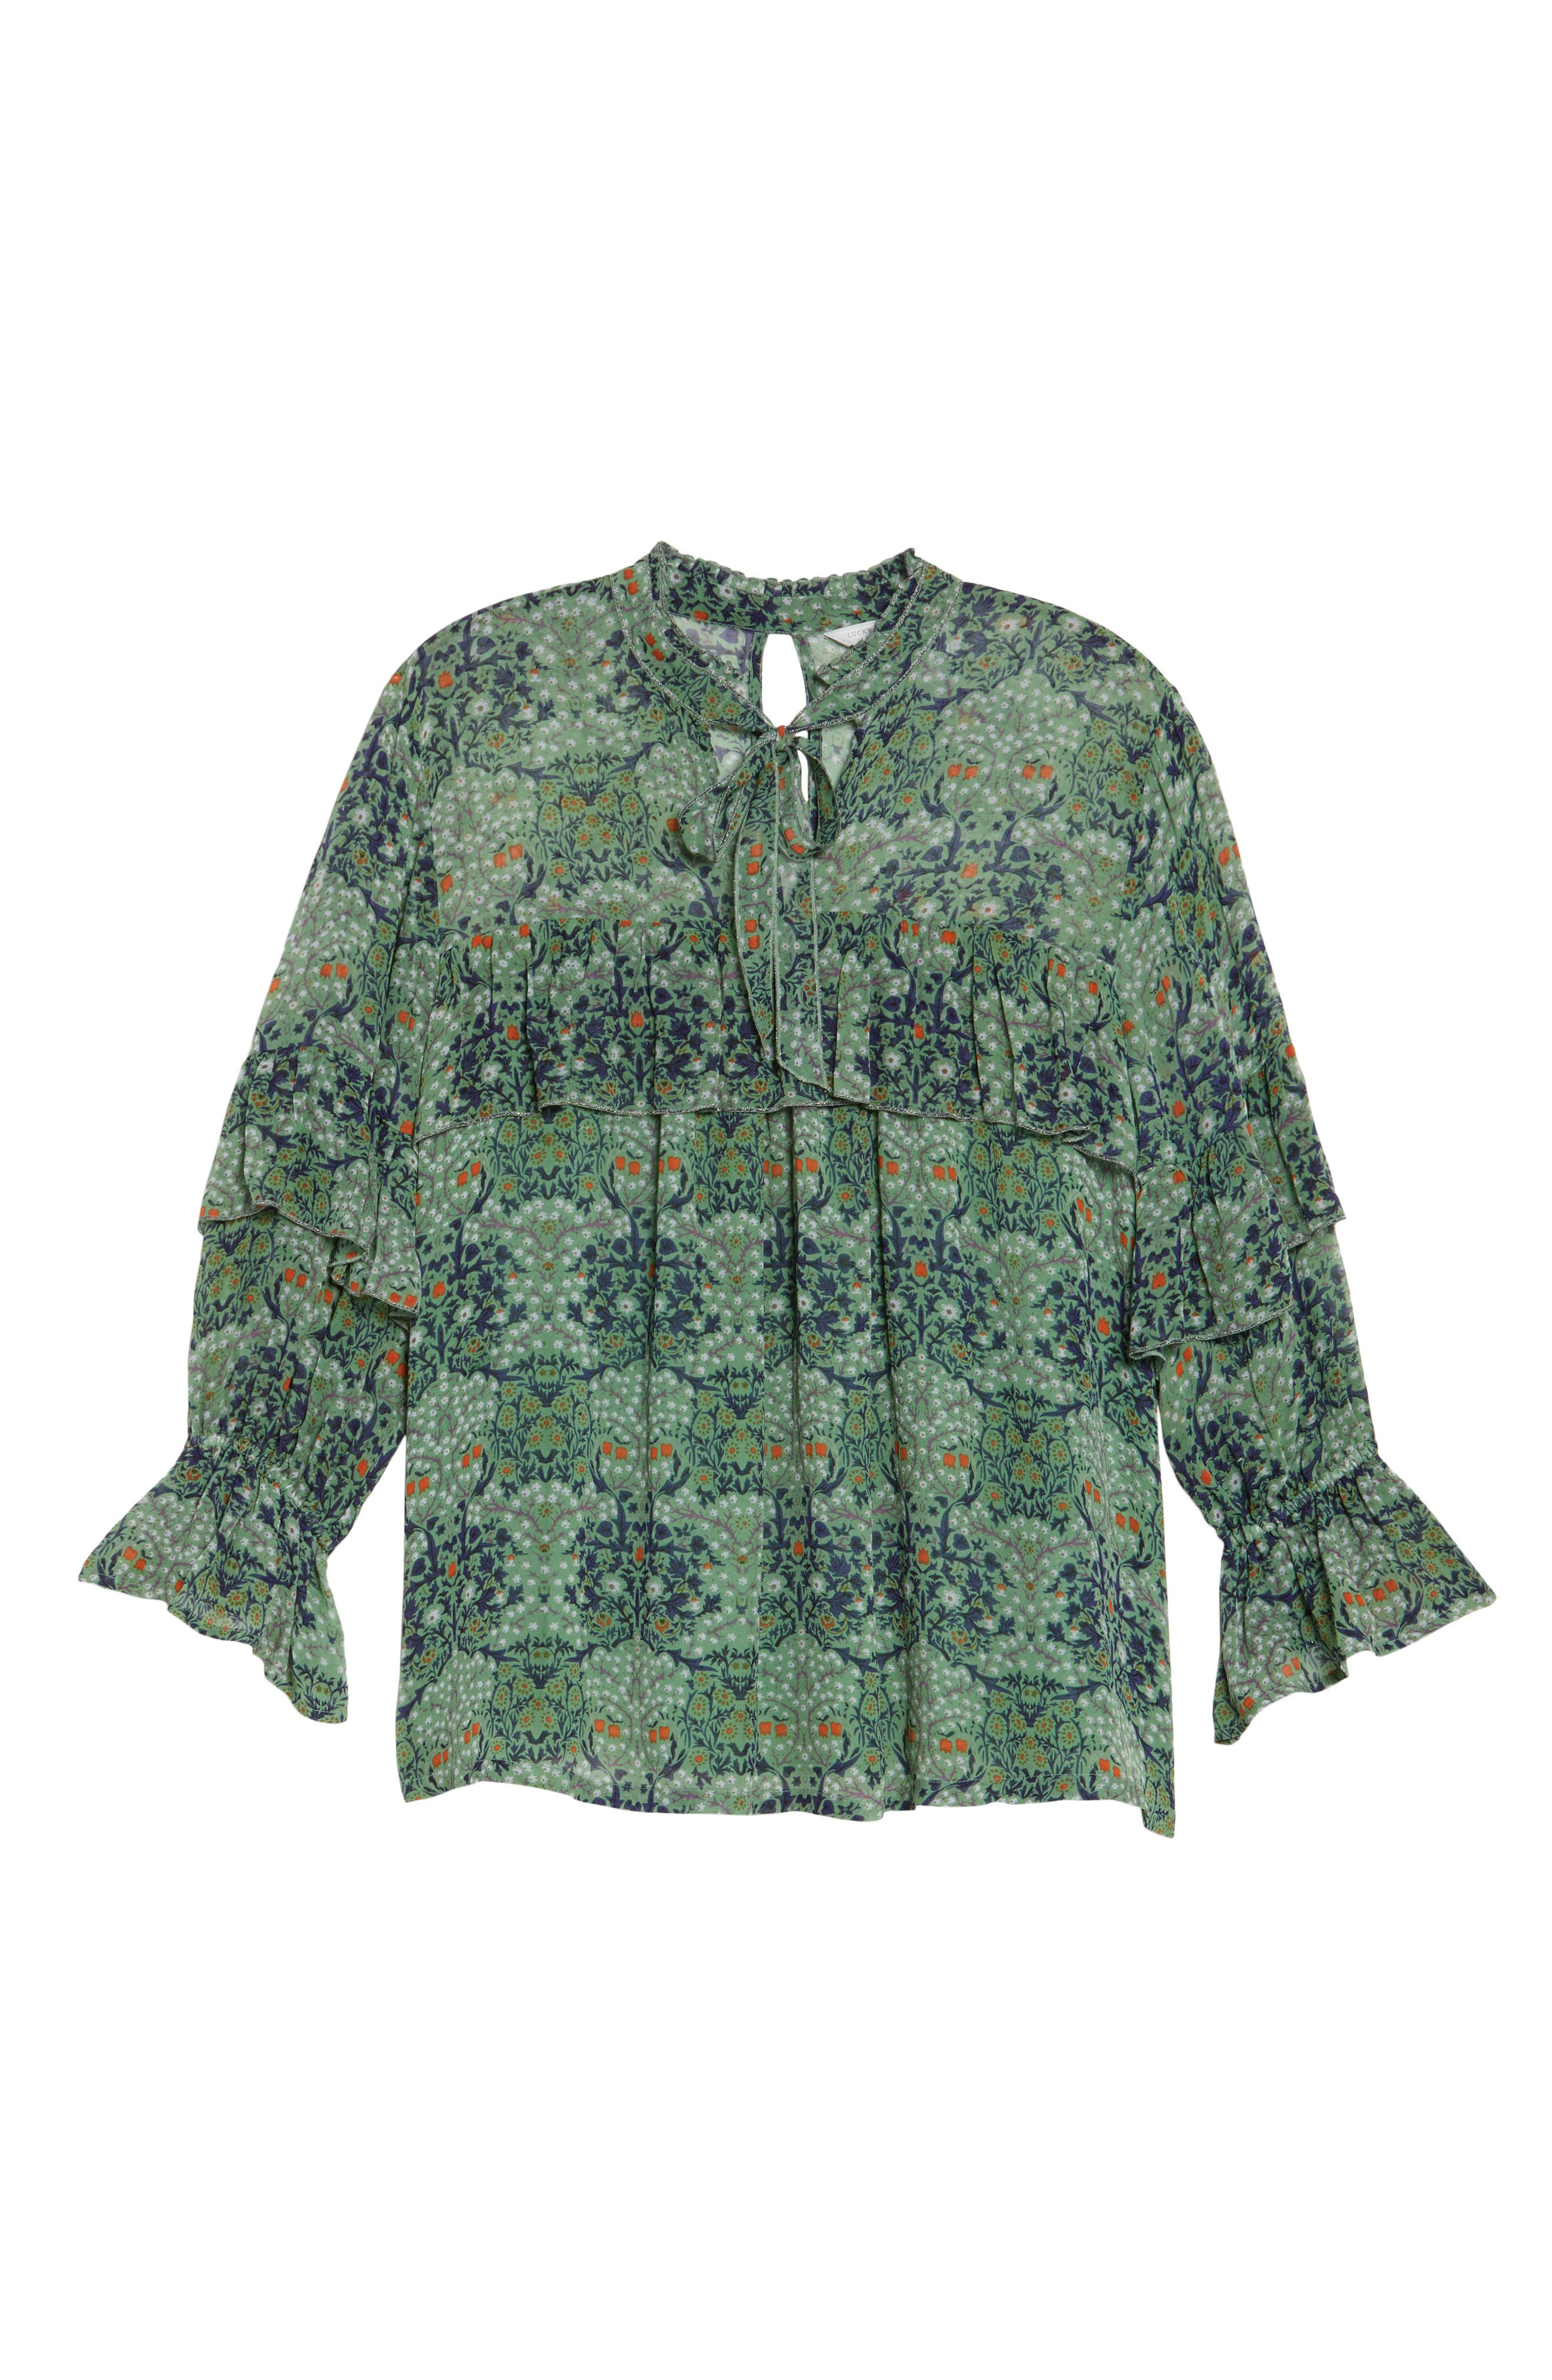 Ruffled Floral Blouse,                             Alternate thumbnail 6, color,                             Green Multi